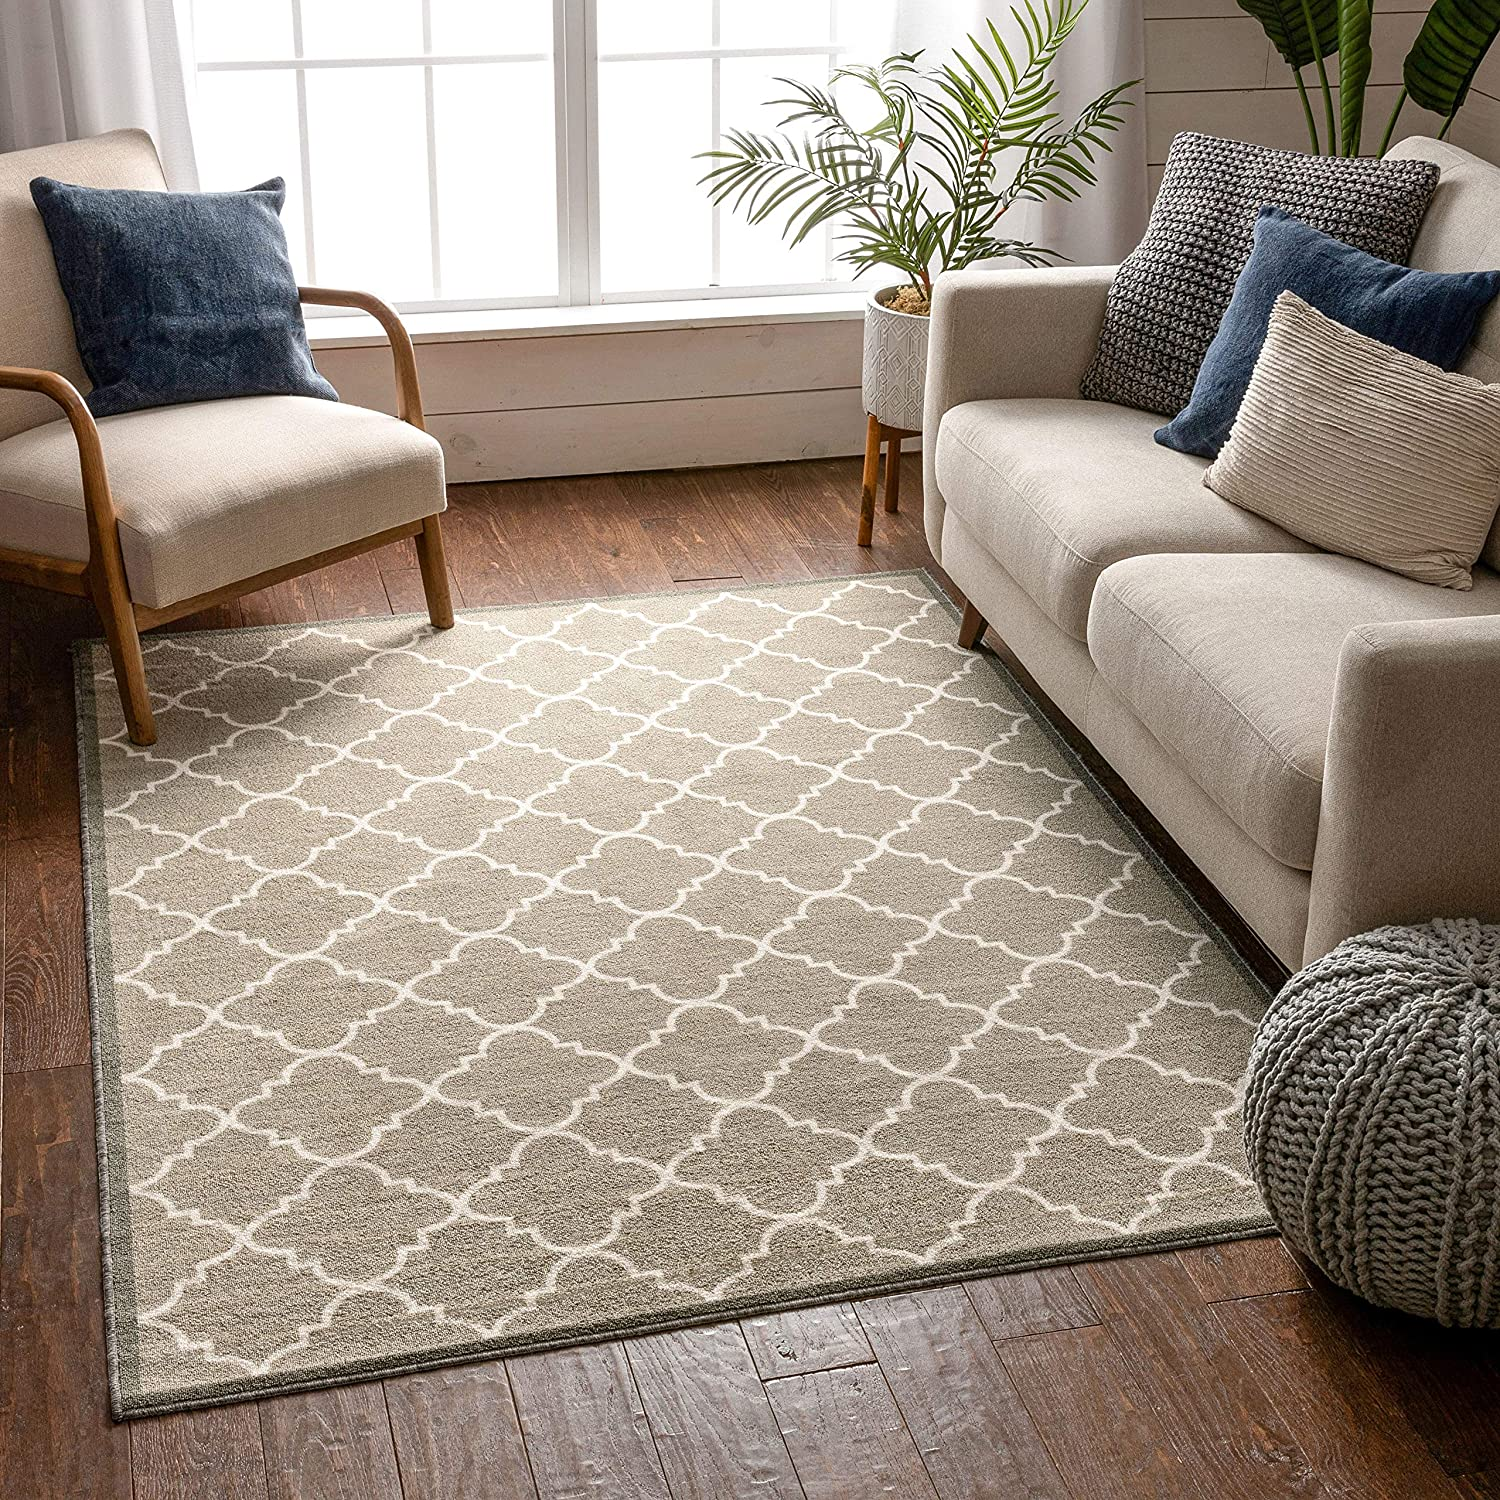 Amazon Com Non Skid Slip Rubber Back Antibacterial 3x5 3 3 X 4 7 Door Mat Rug Dallas Moroccan Trellis Grey Modern Geometric Lattice Thin Low Pile Machine Washable Indoor Outdoor Kitchen Entry Garden Washable throw rugs without rubber backing